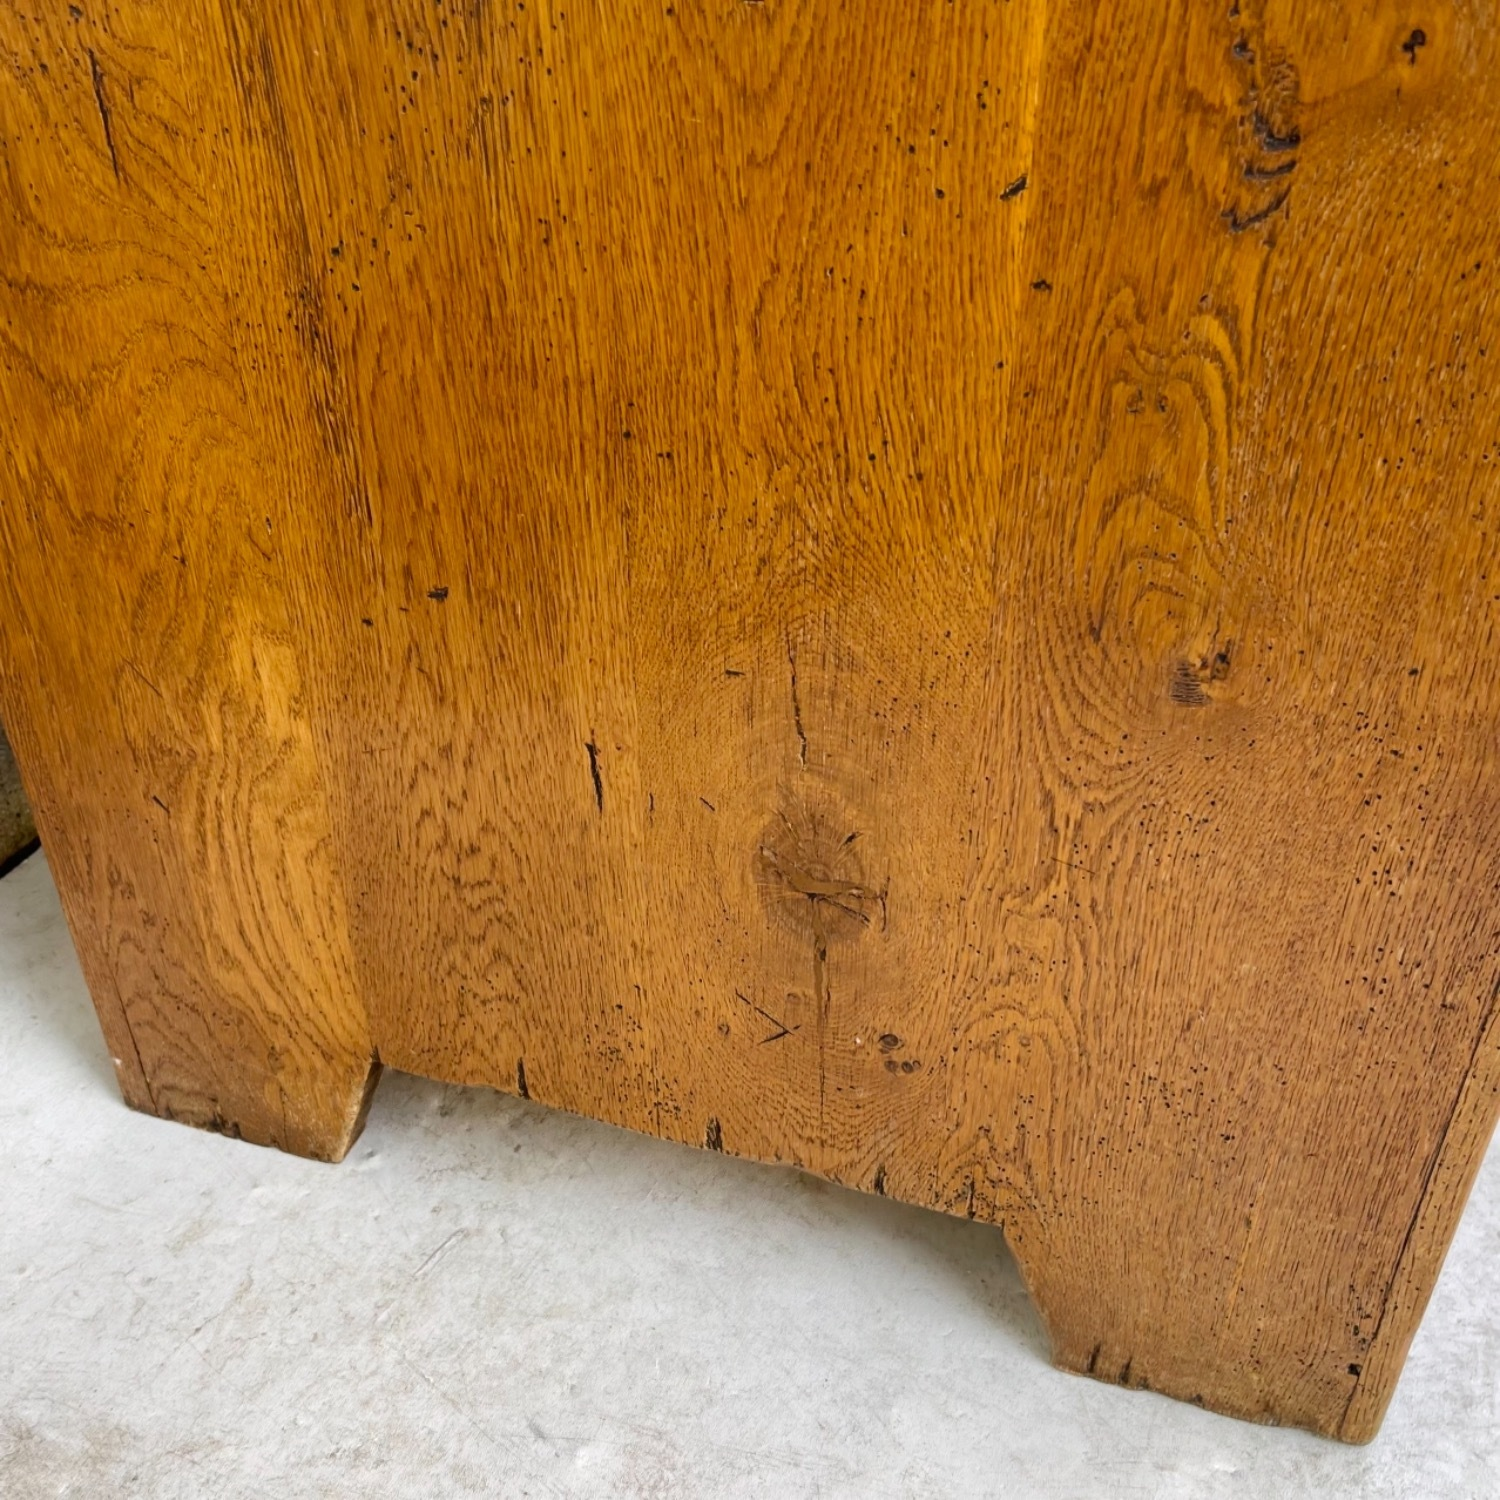 Antique Country Style Cupboard With Topper - image-18